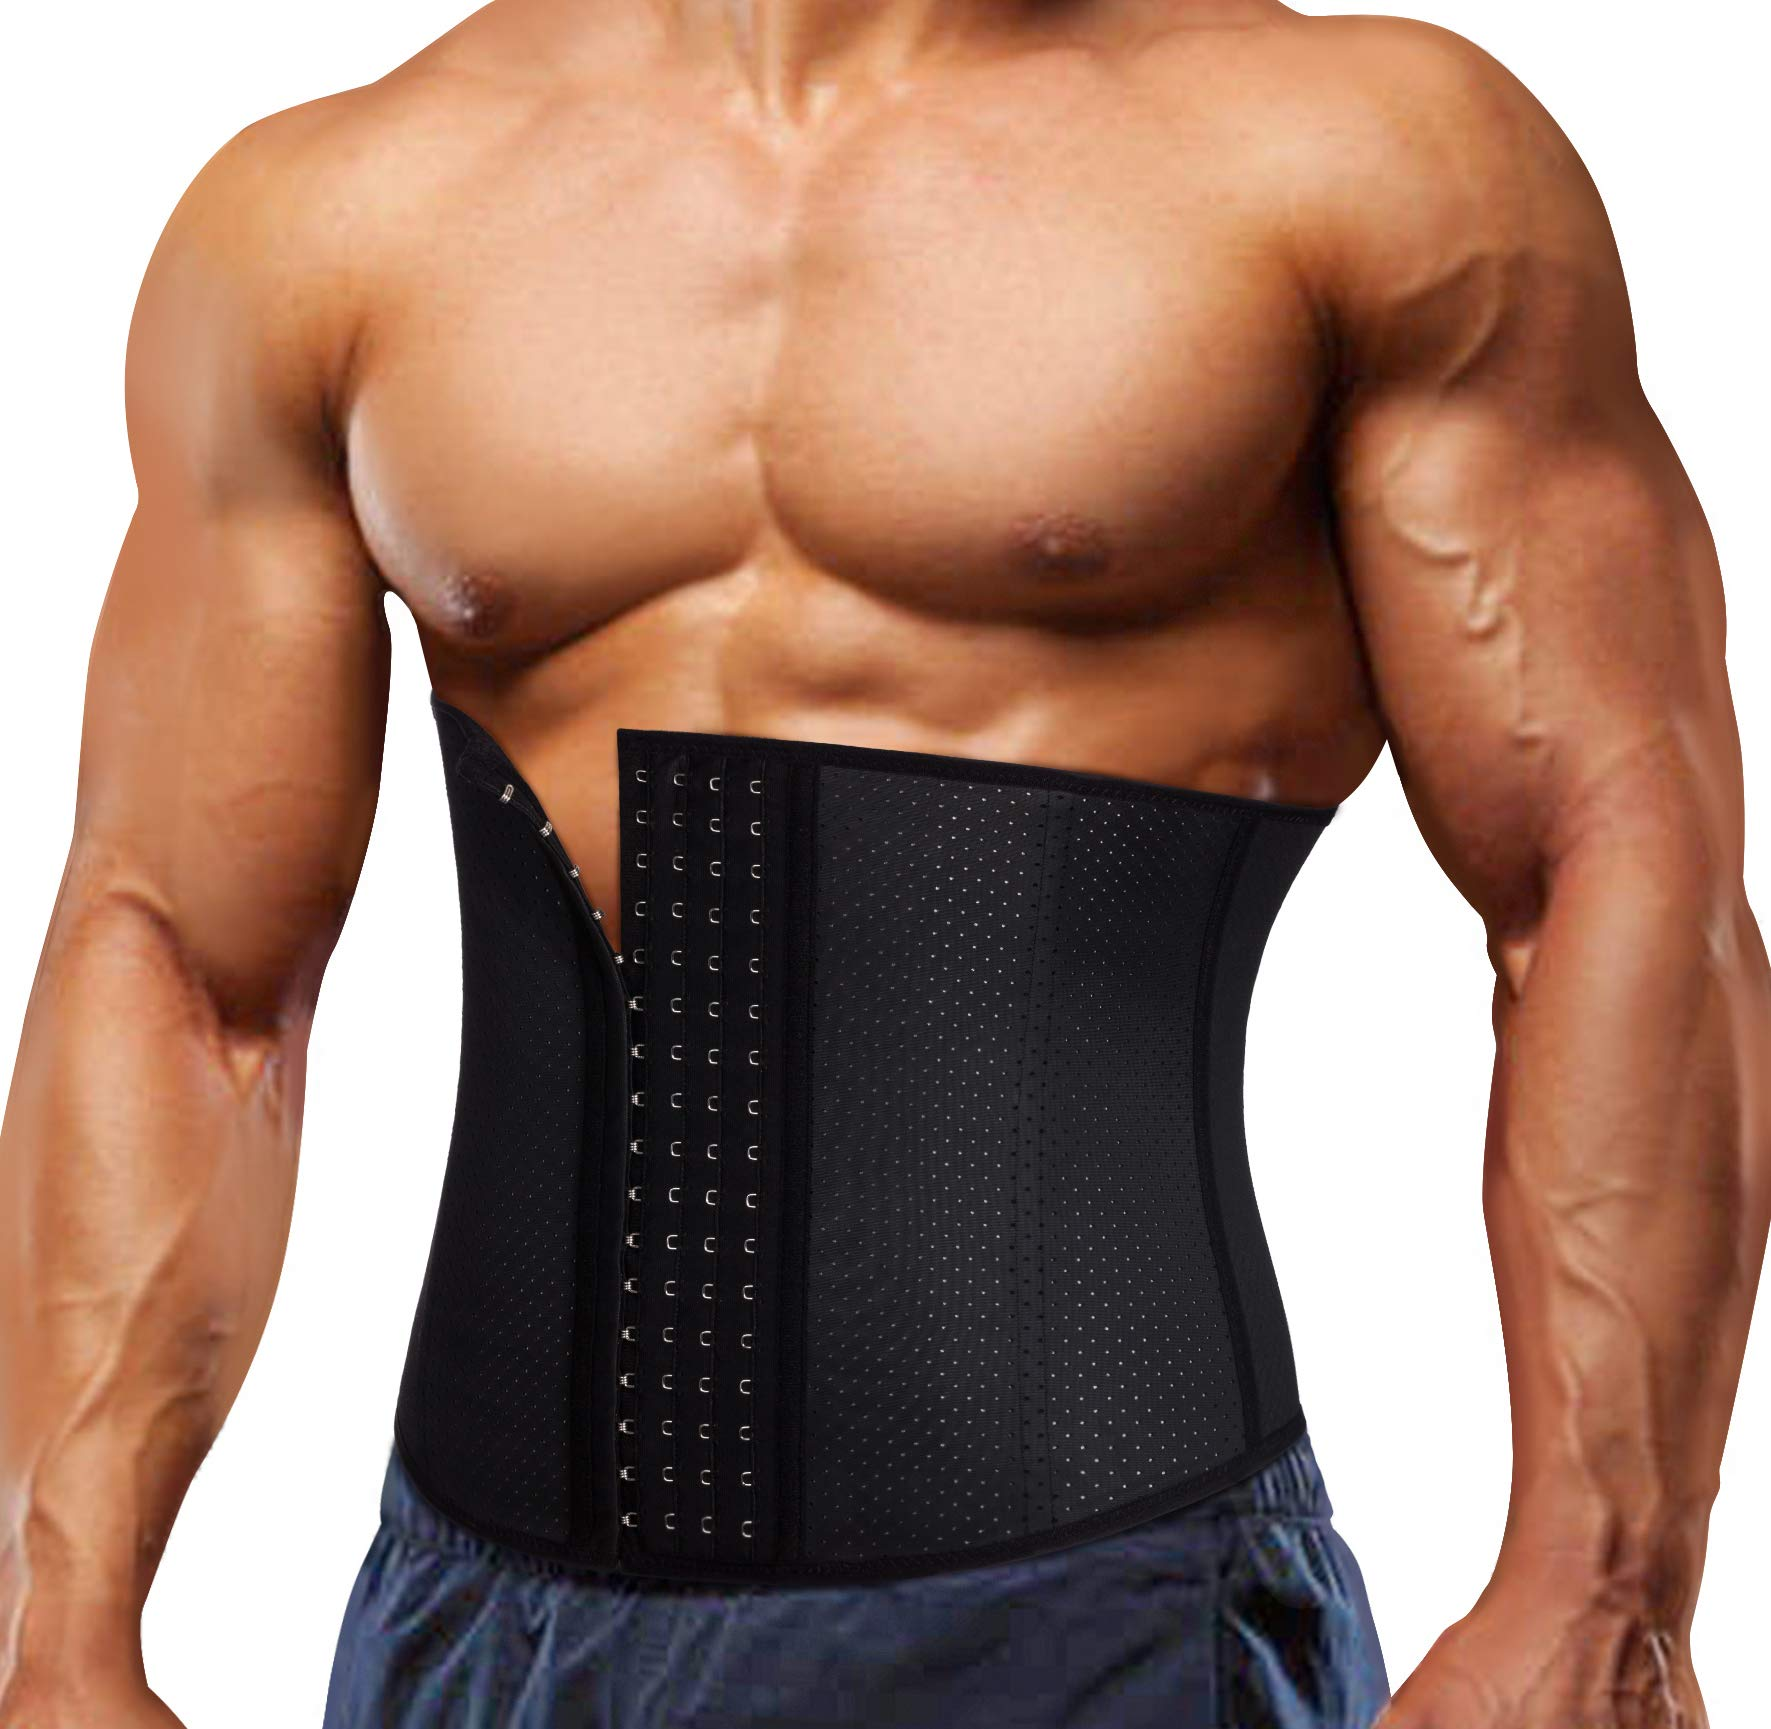 3bc8a1a374 Latex Waist Trainer Belt for Men Body Weight Loss Hot Sweat Fat Burning  Shaper Workout Trimmer